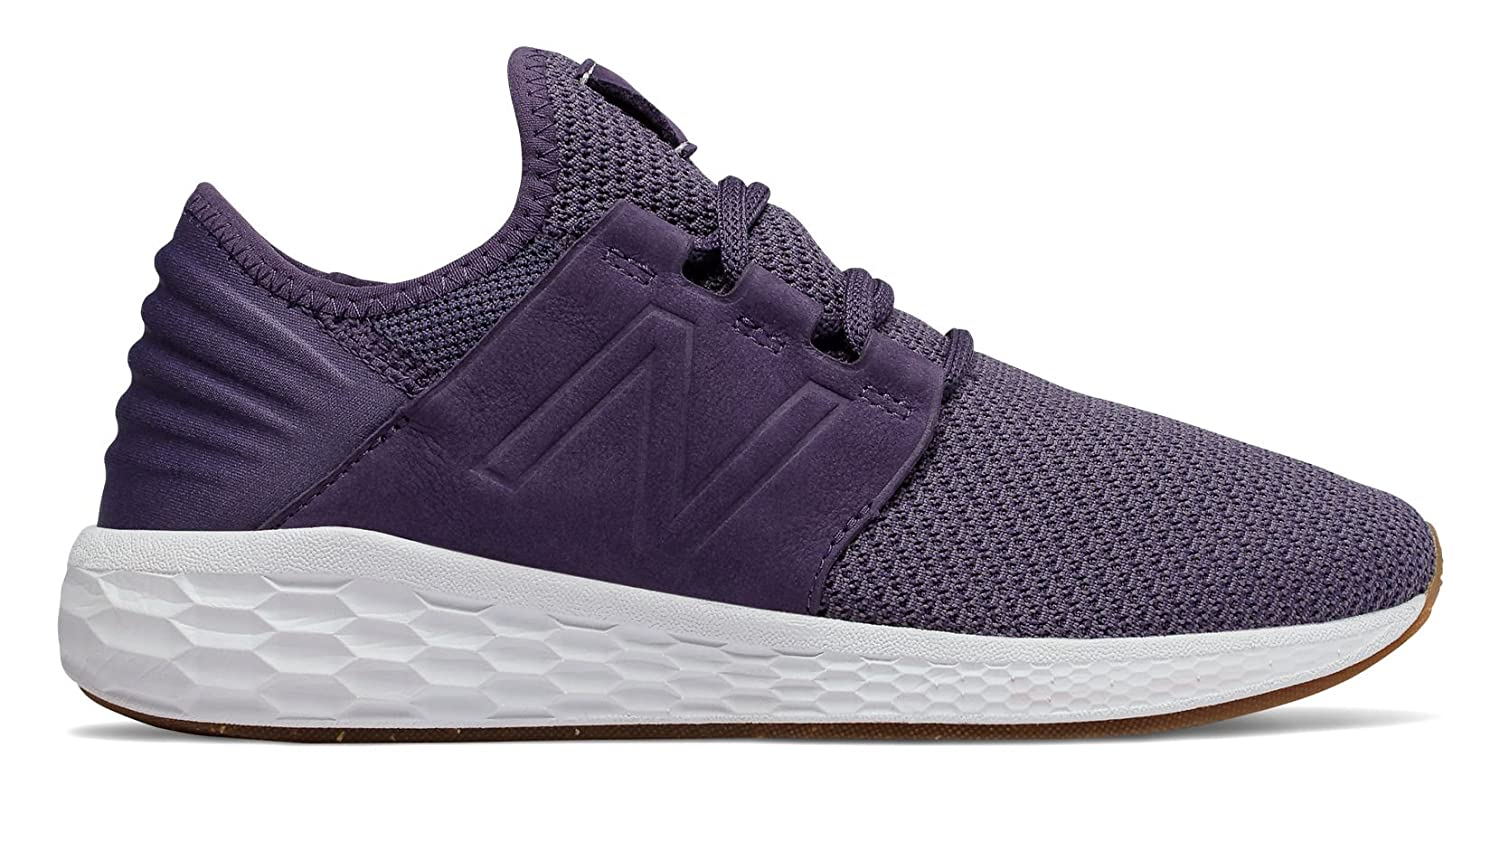 New Balance Women's Cruz V2 Fresh Foam Running Shoe B075R7PNL6 10 D US|Wild Indigo-402